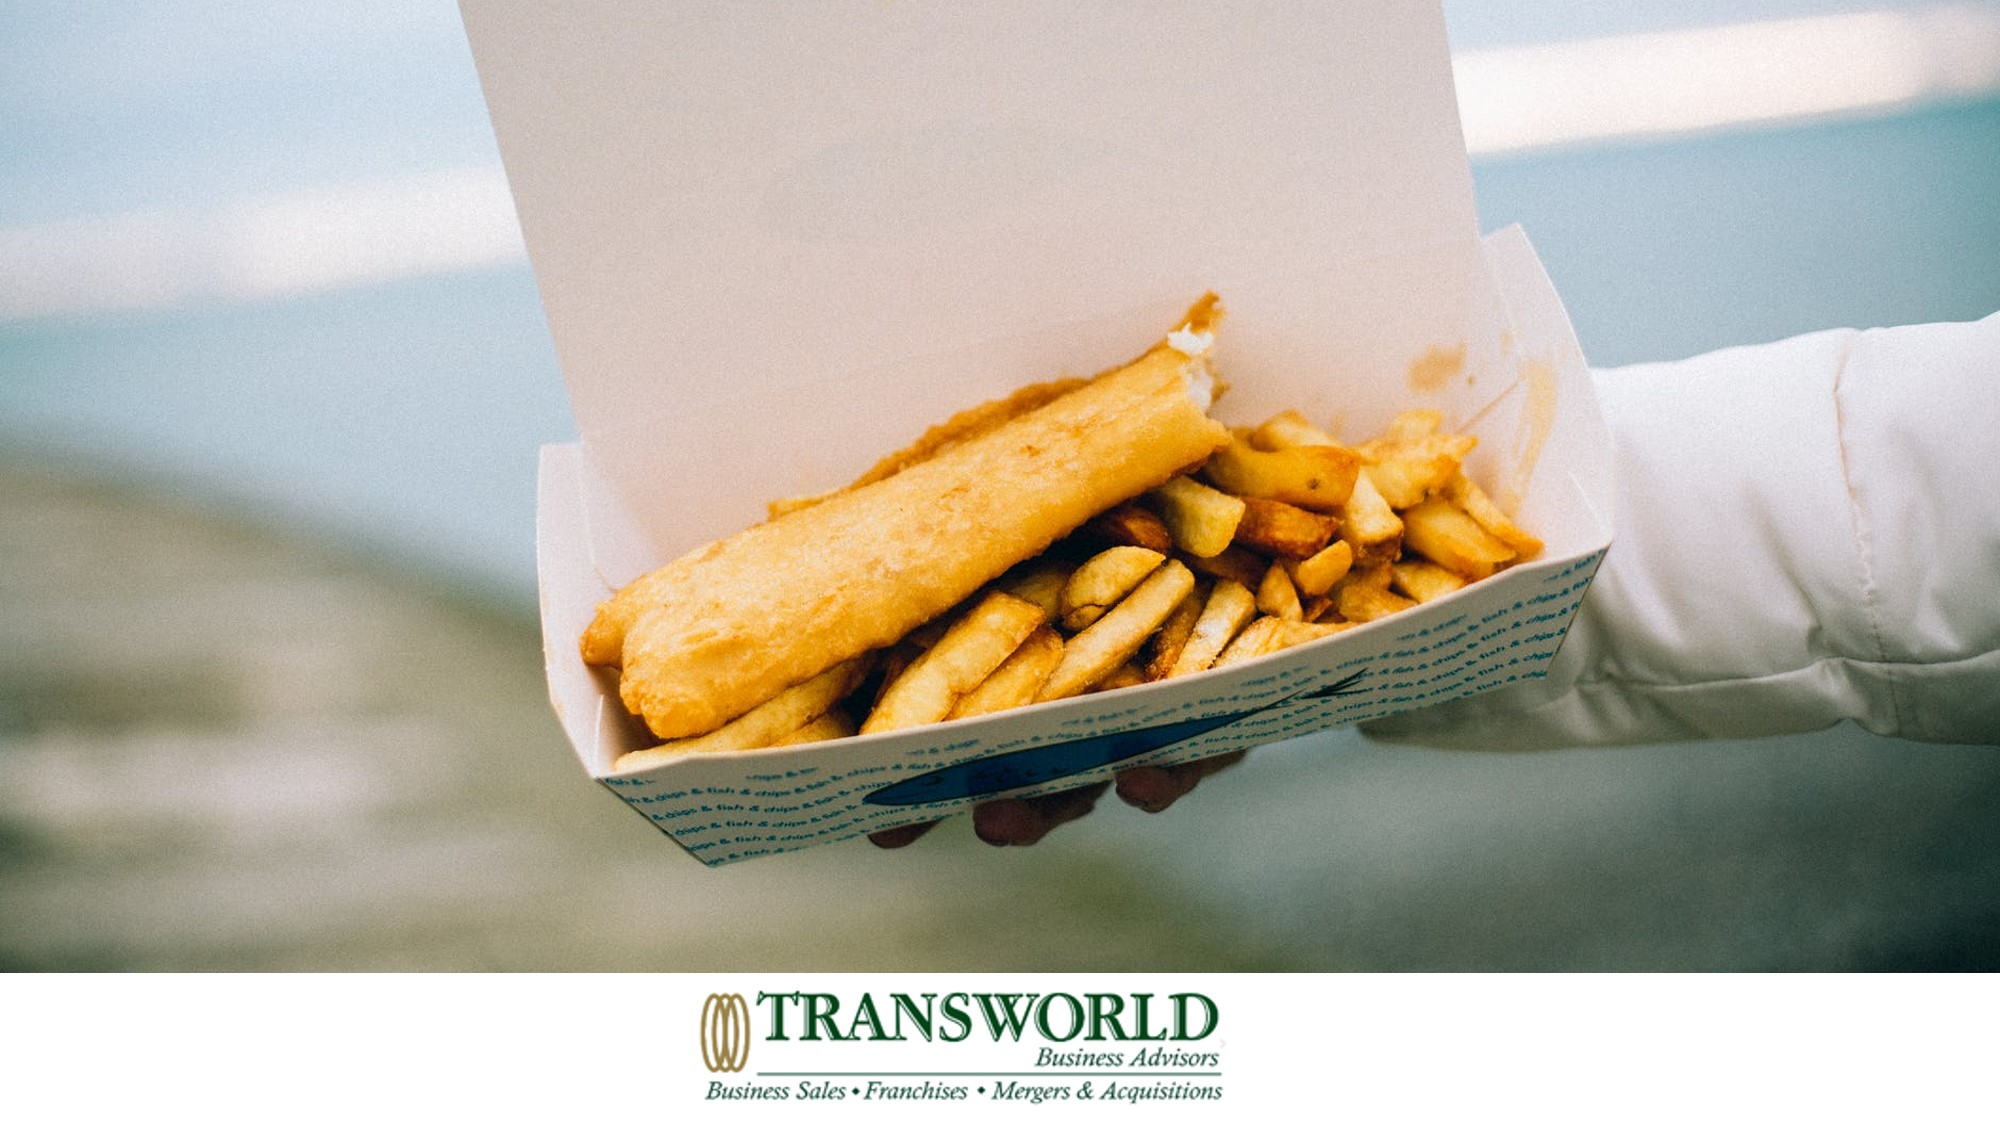 High Traffic Fish & Chip Shop – Great Location - No Competition